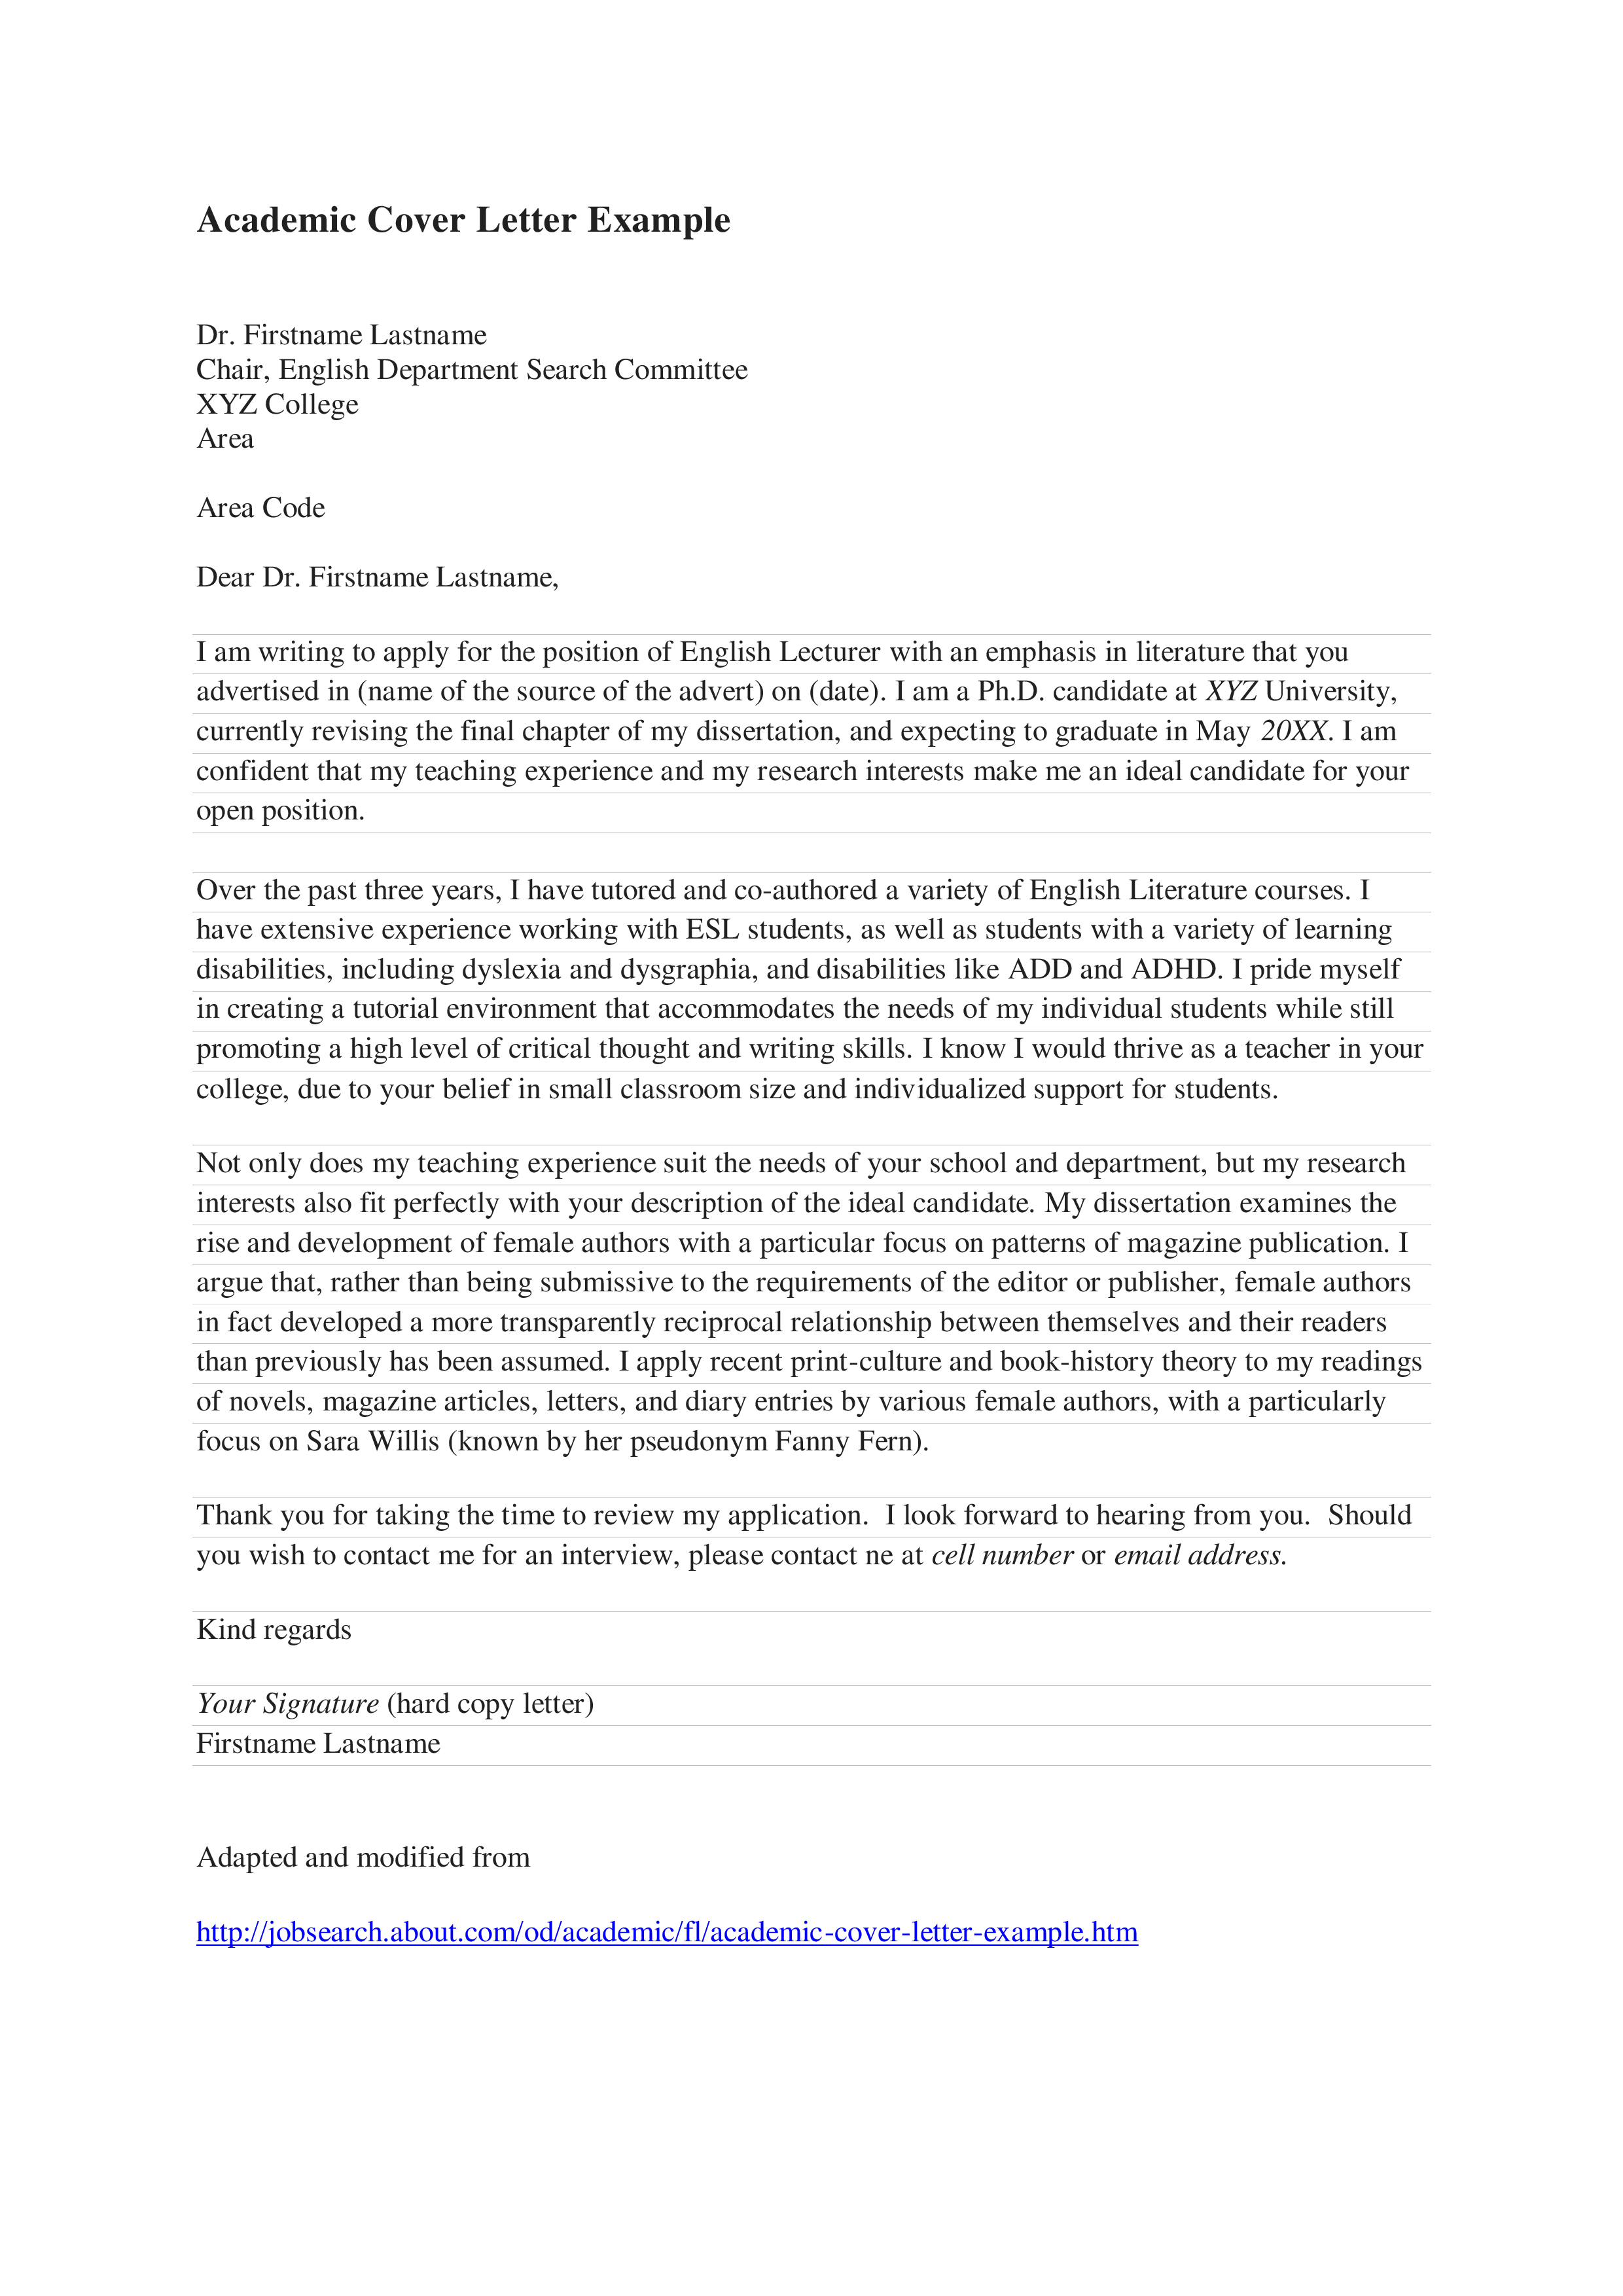 Free Academic Cover Letter Templates At Allbusinesstemplates Com